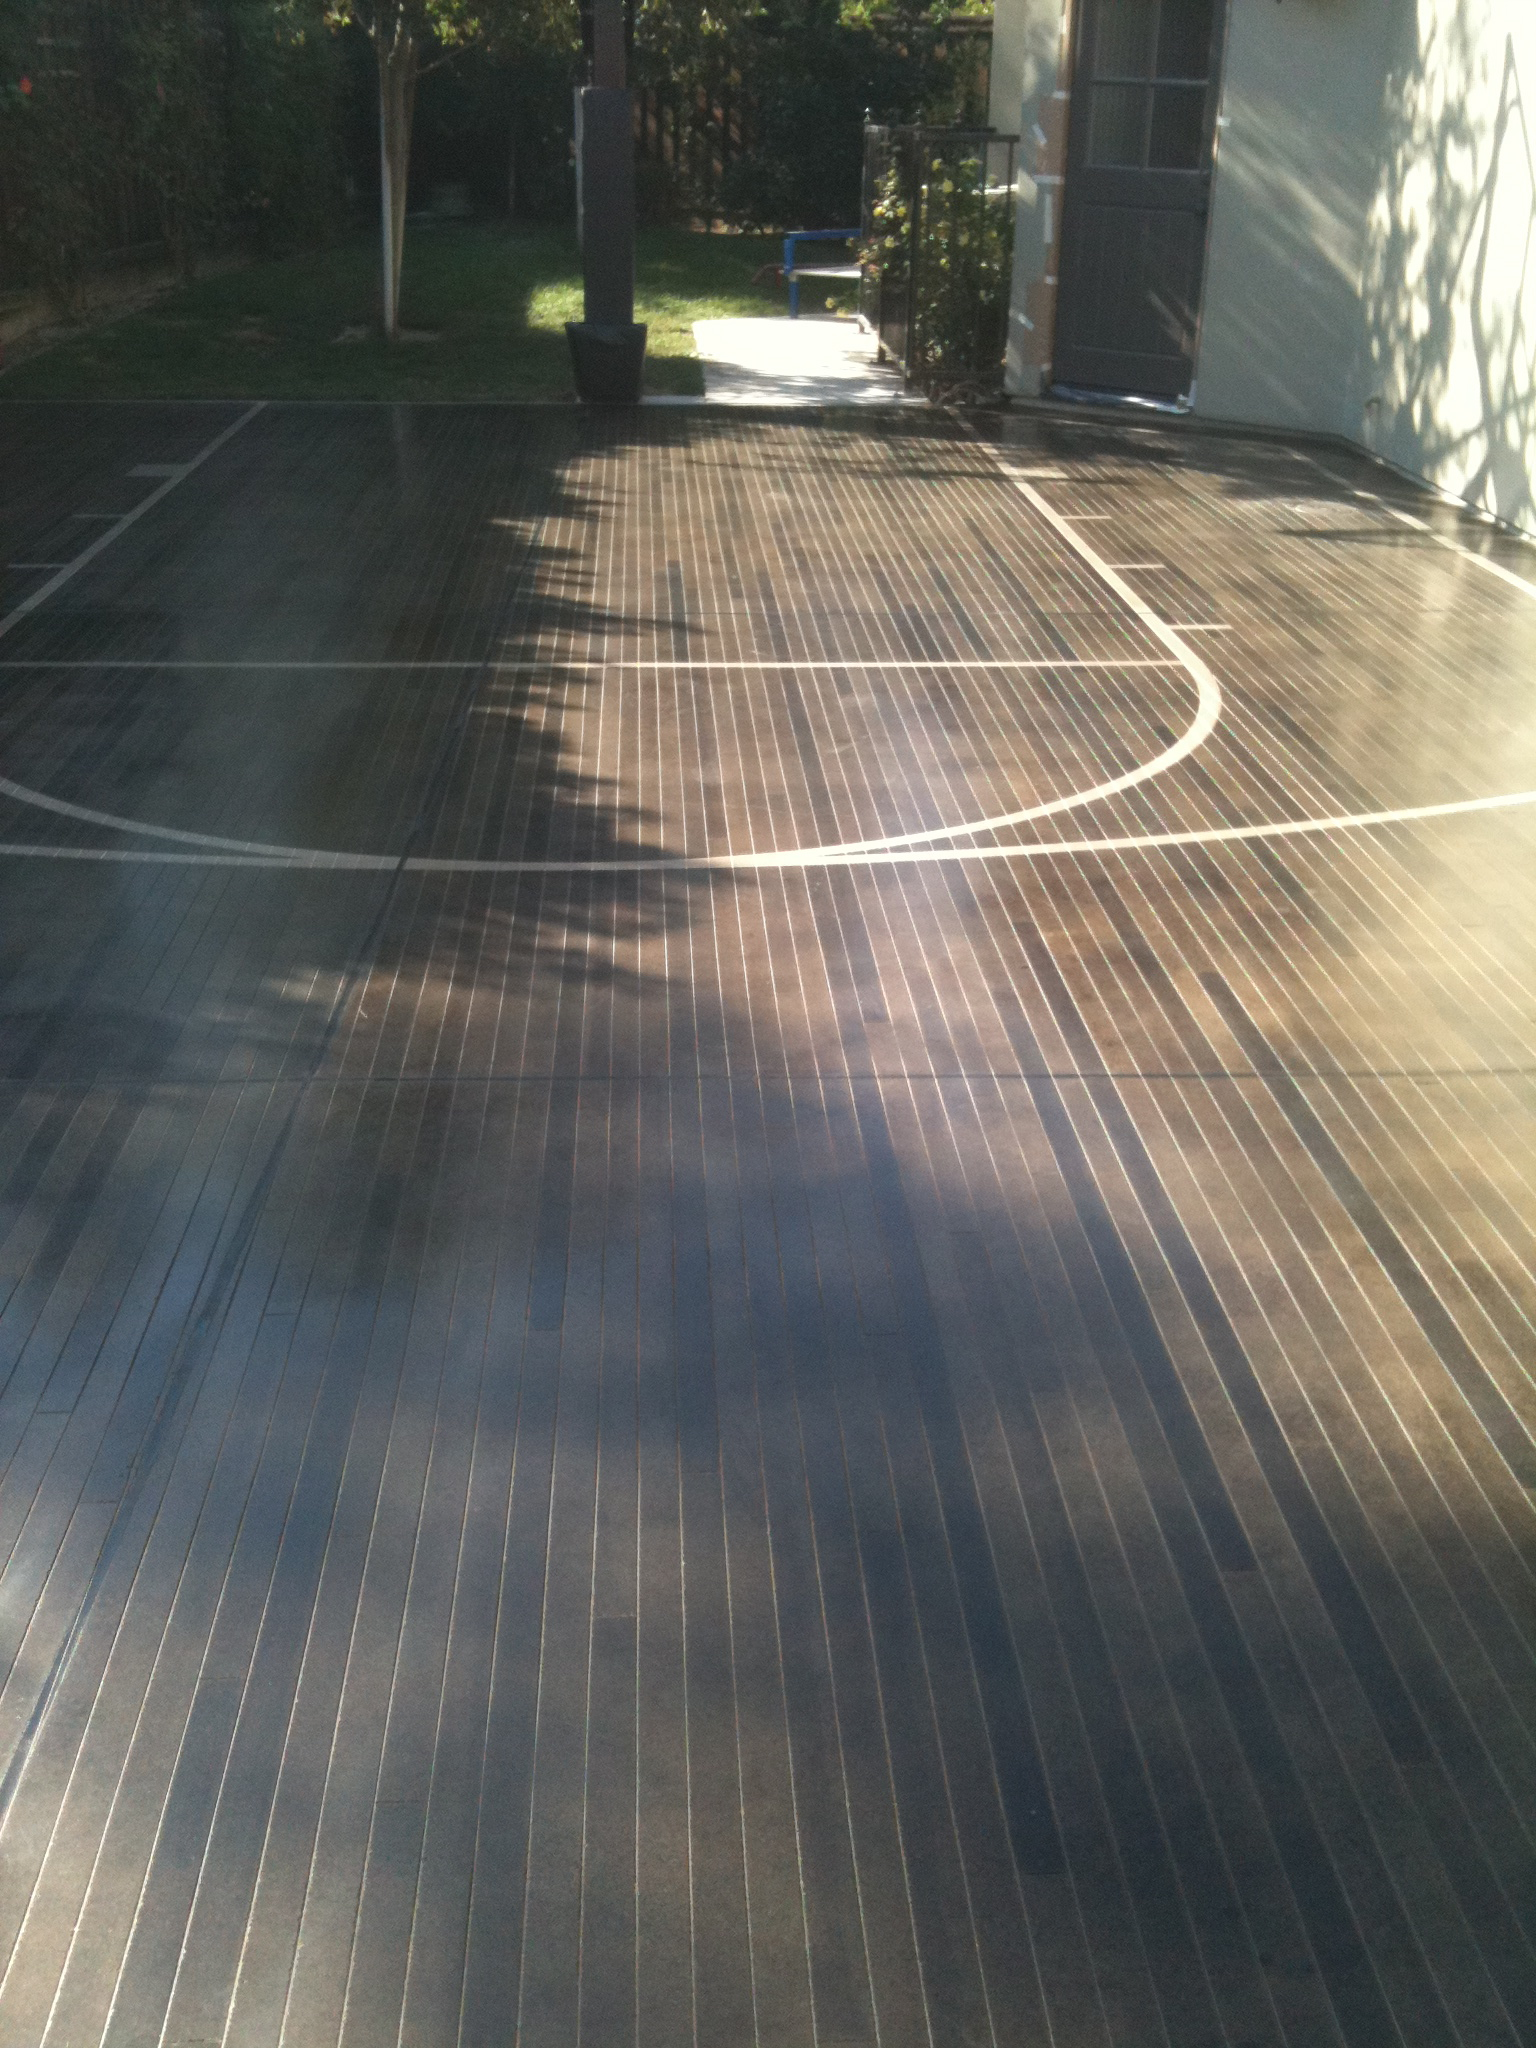 Outdoor Basketball court#2.JPG